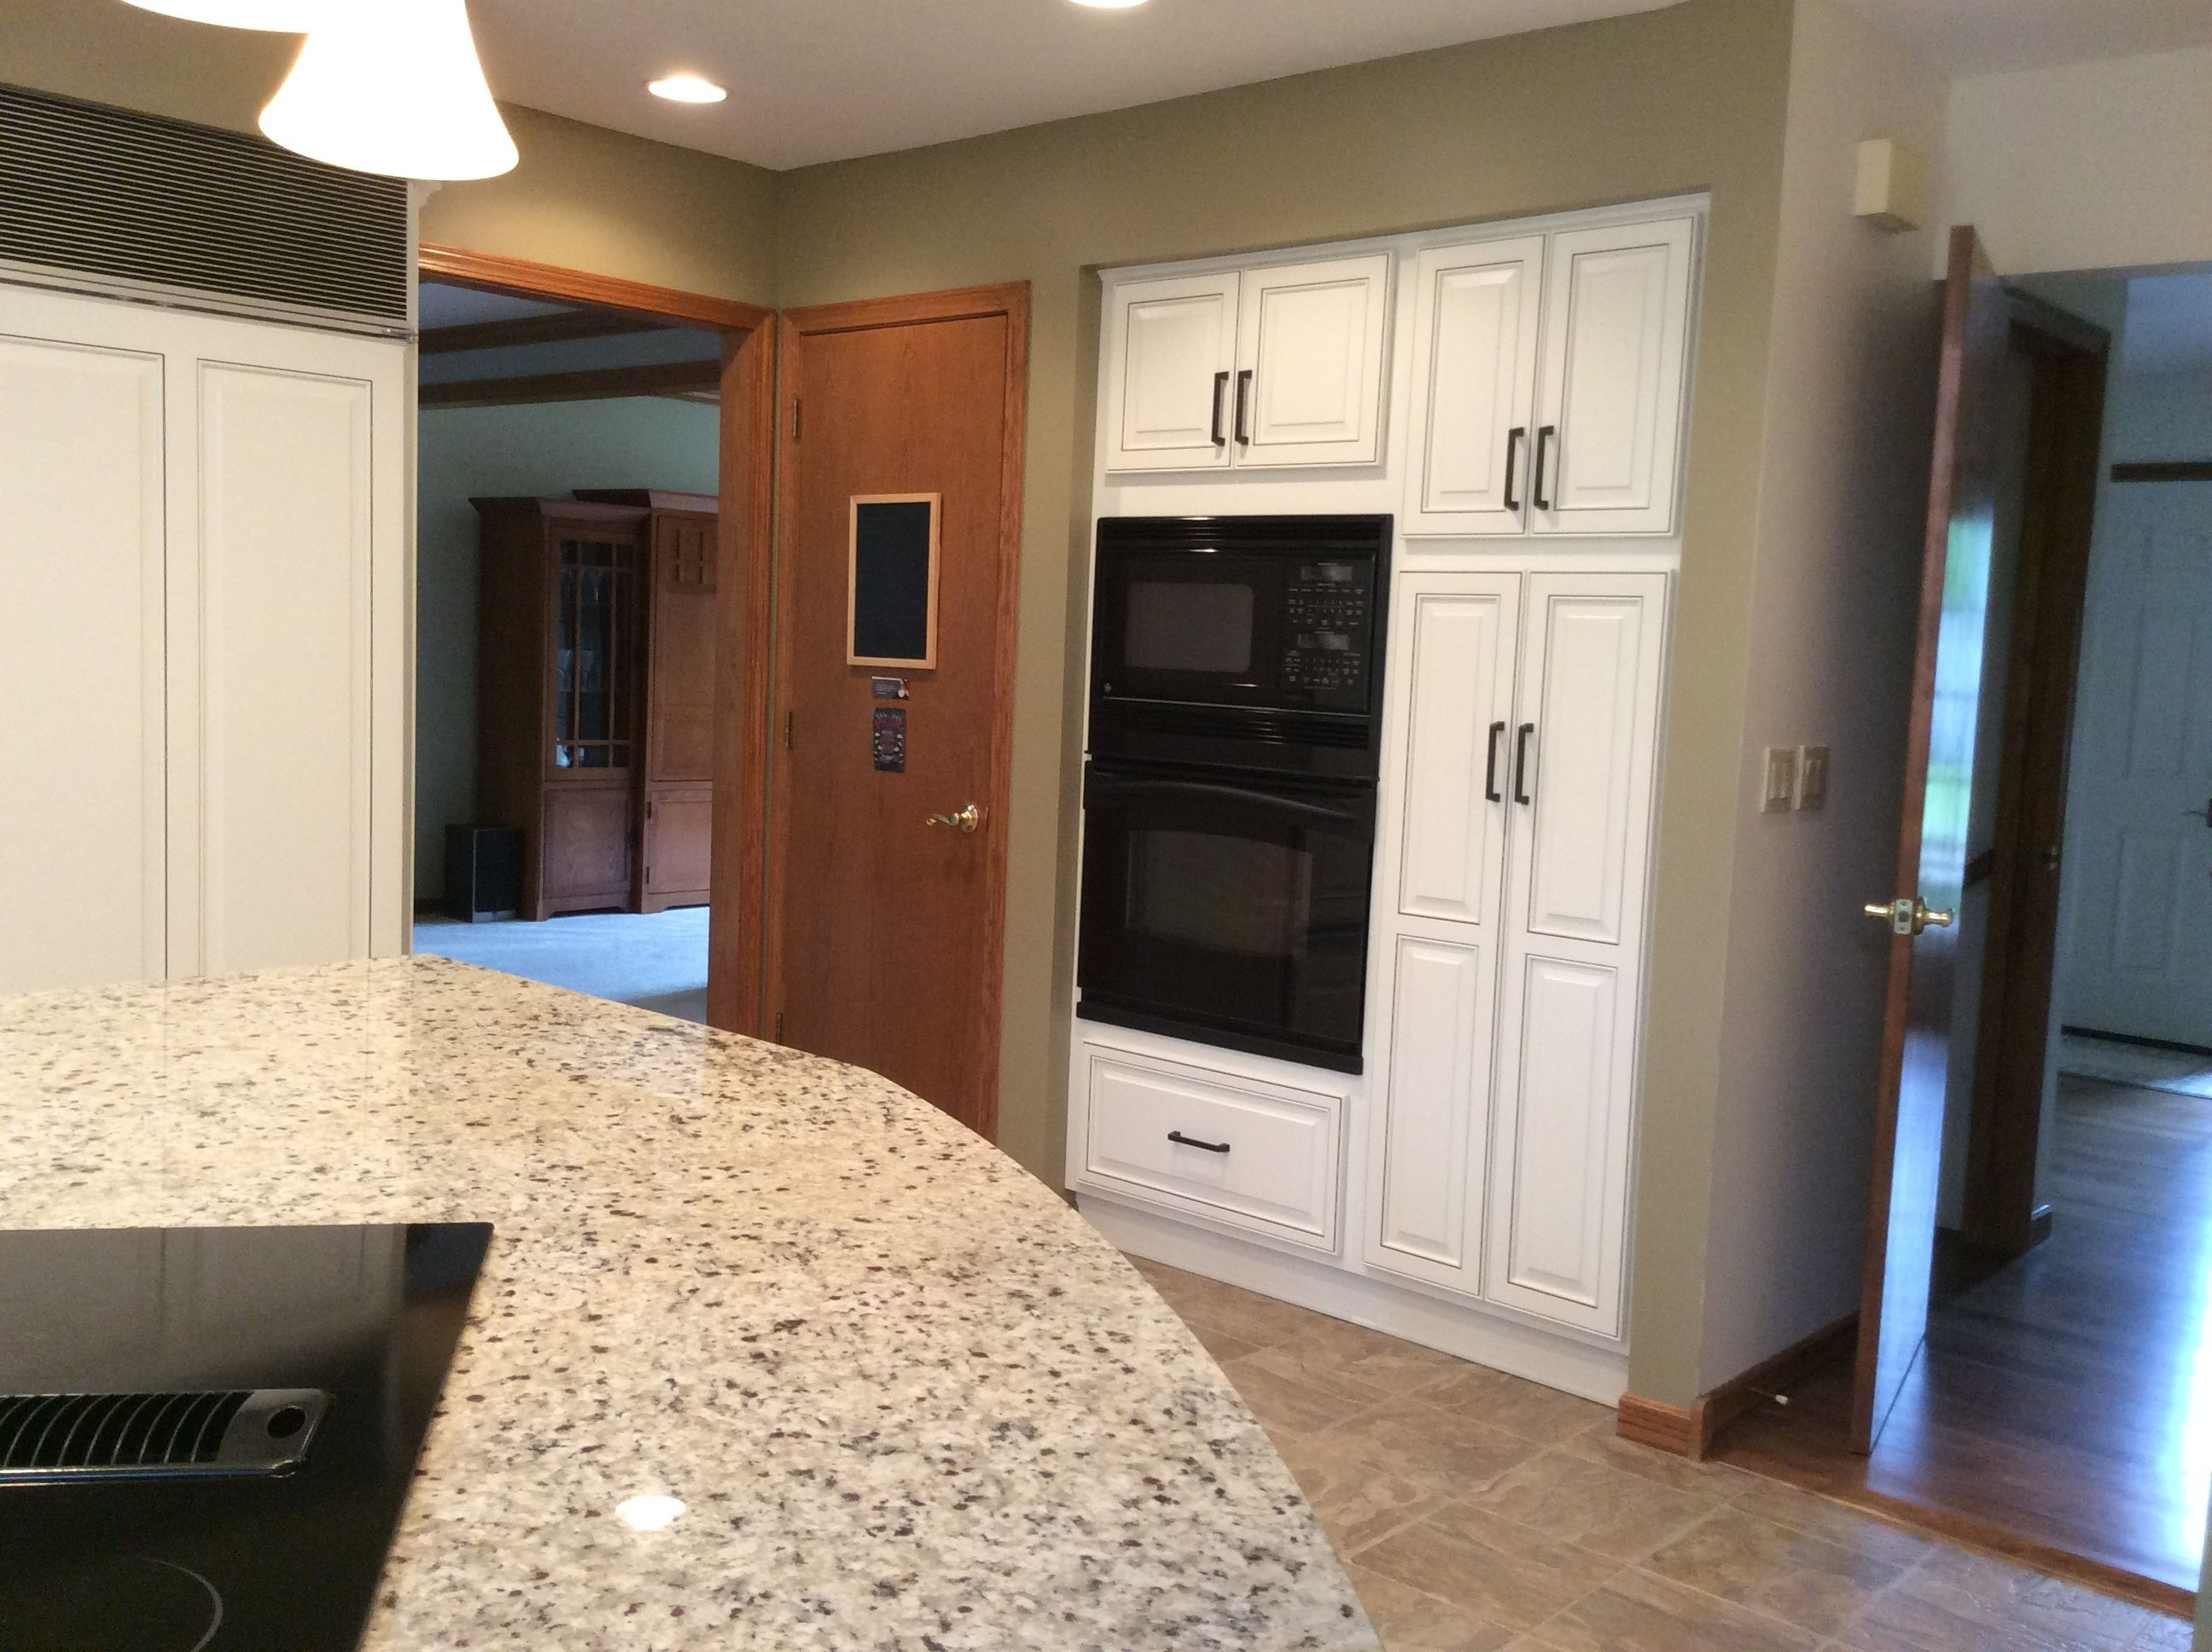 Parchment Color Cabinets Were Refaced From Honey Oak Wall Color Is Northampton Putty By Benjamin Moore Reface Honey Oak Wall Color